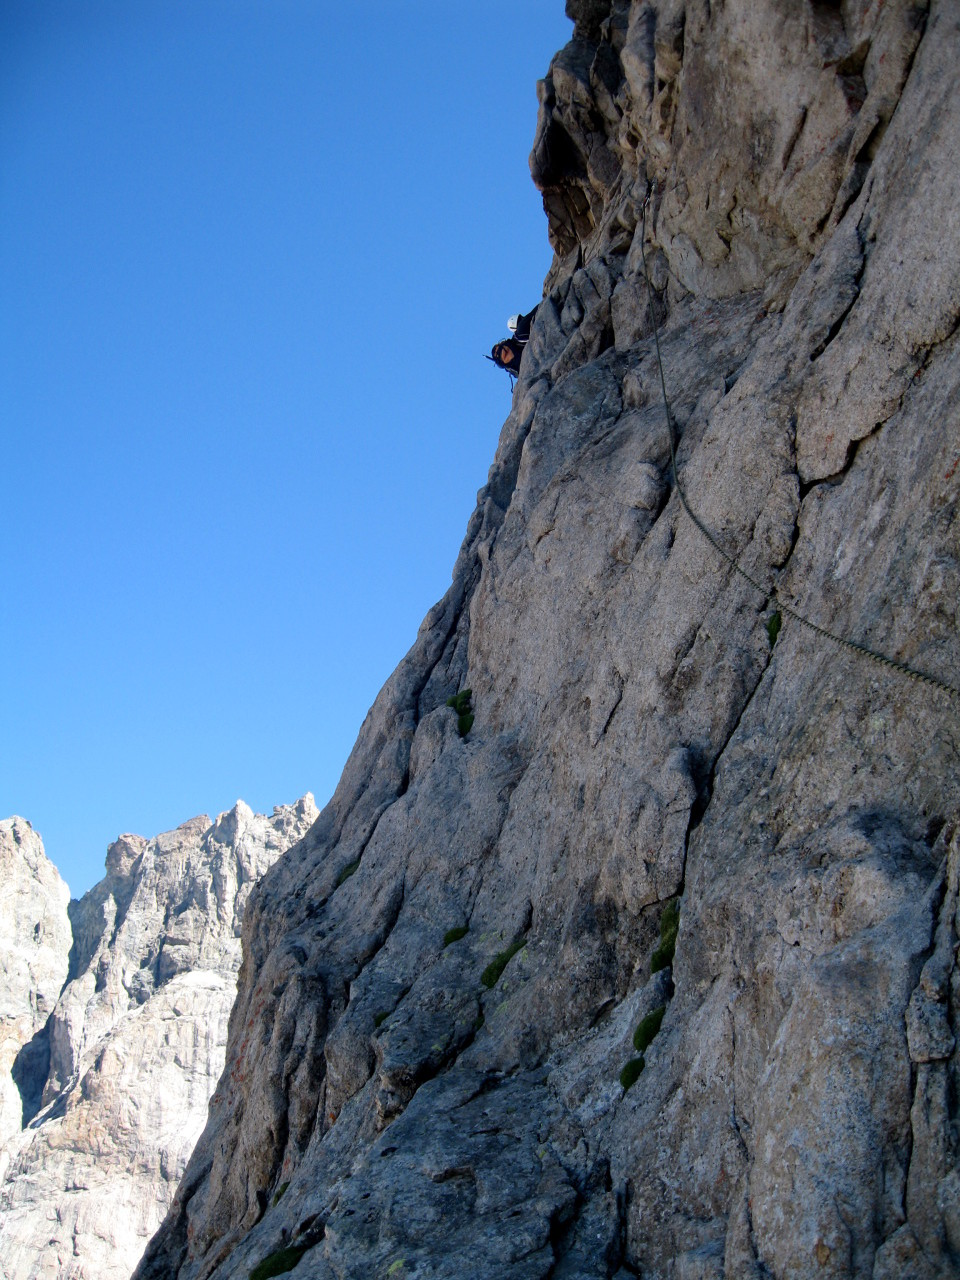 Within the traverse at the start of the third projection